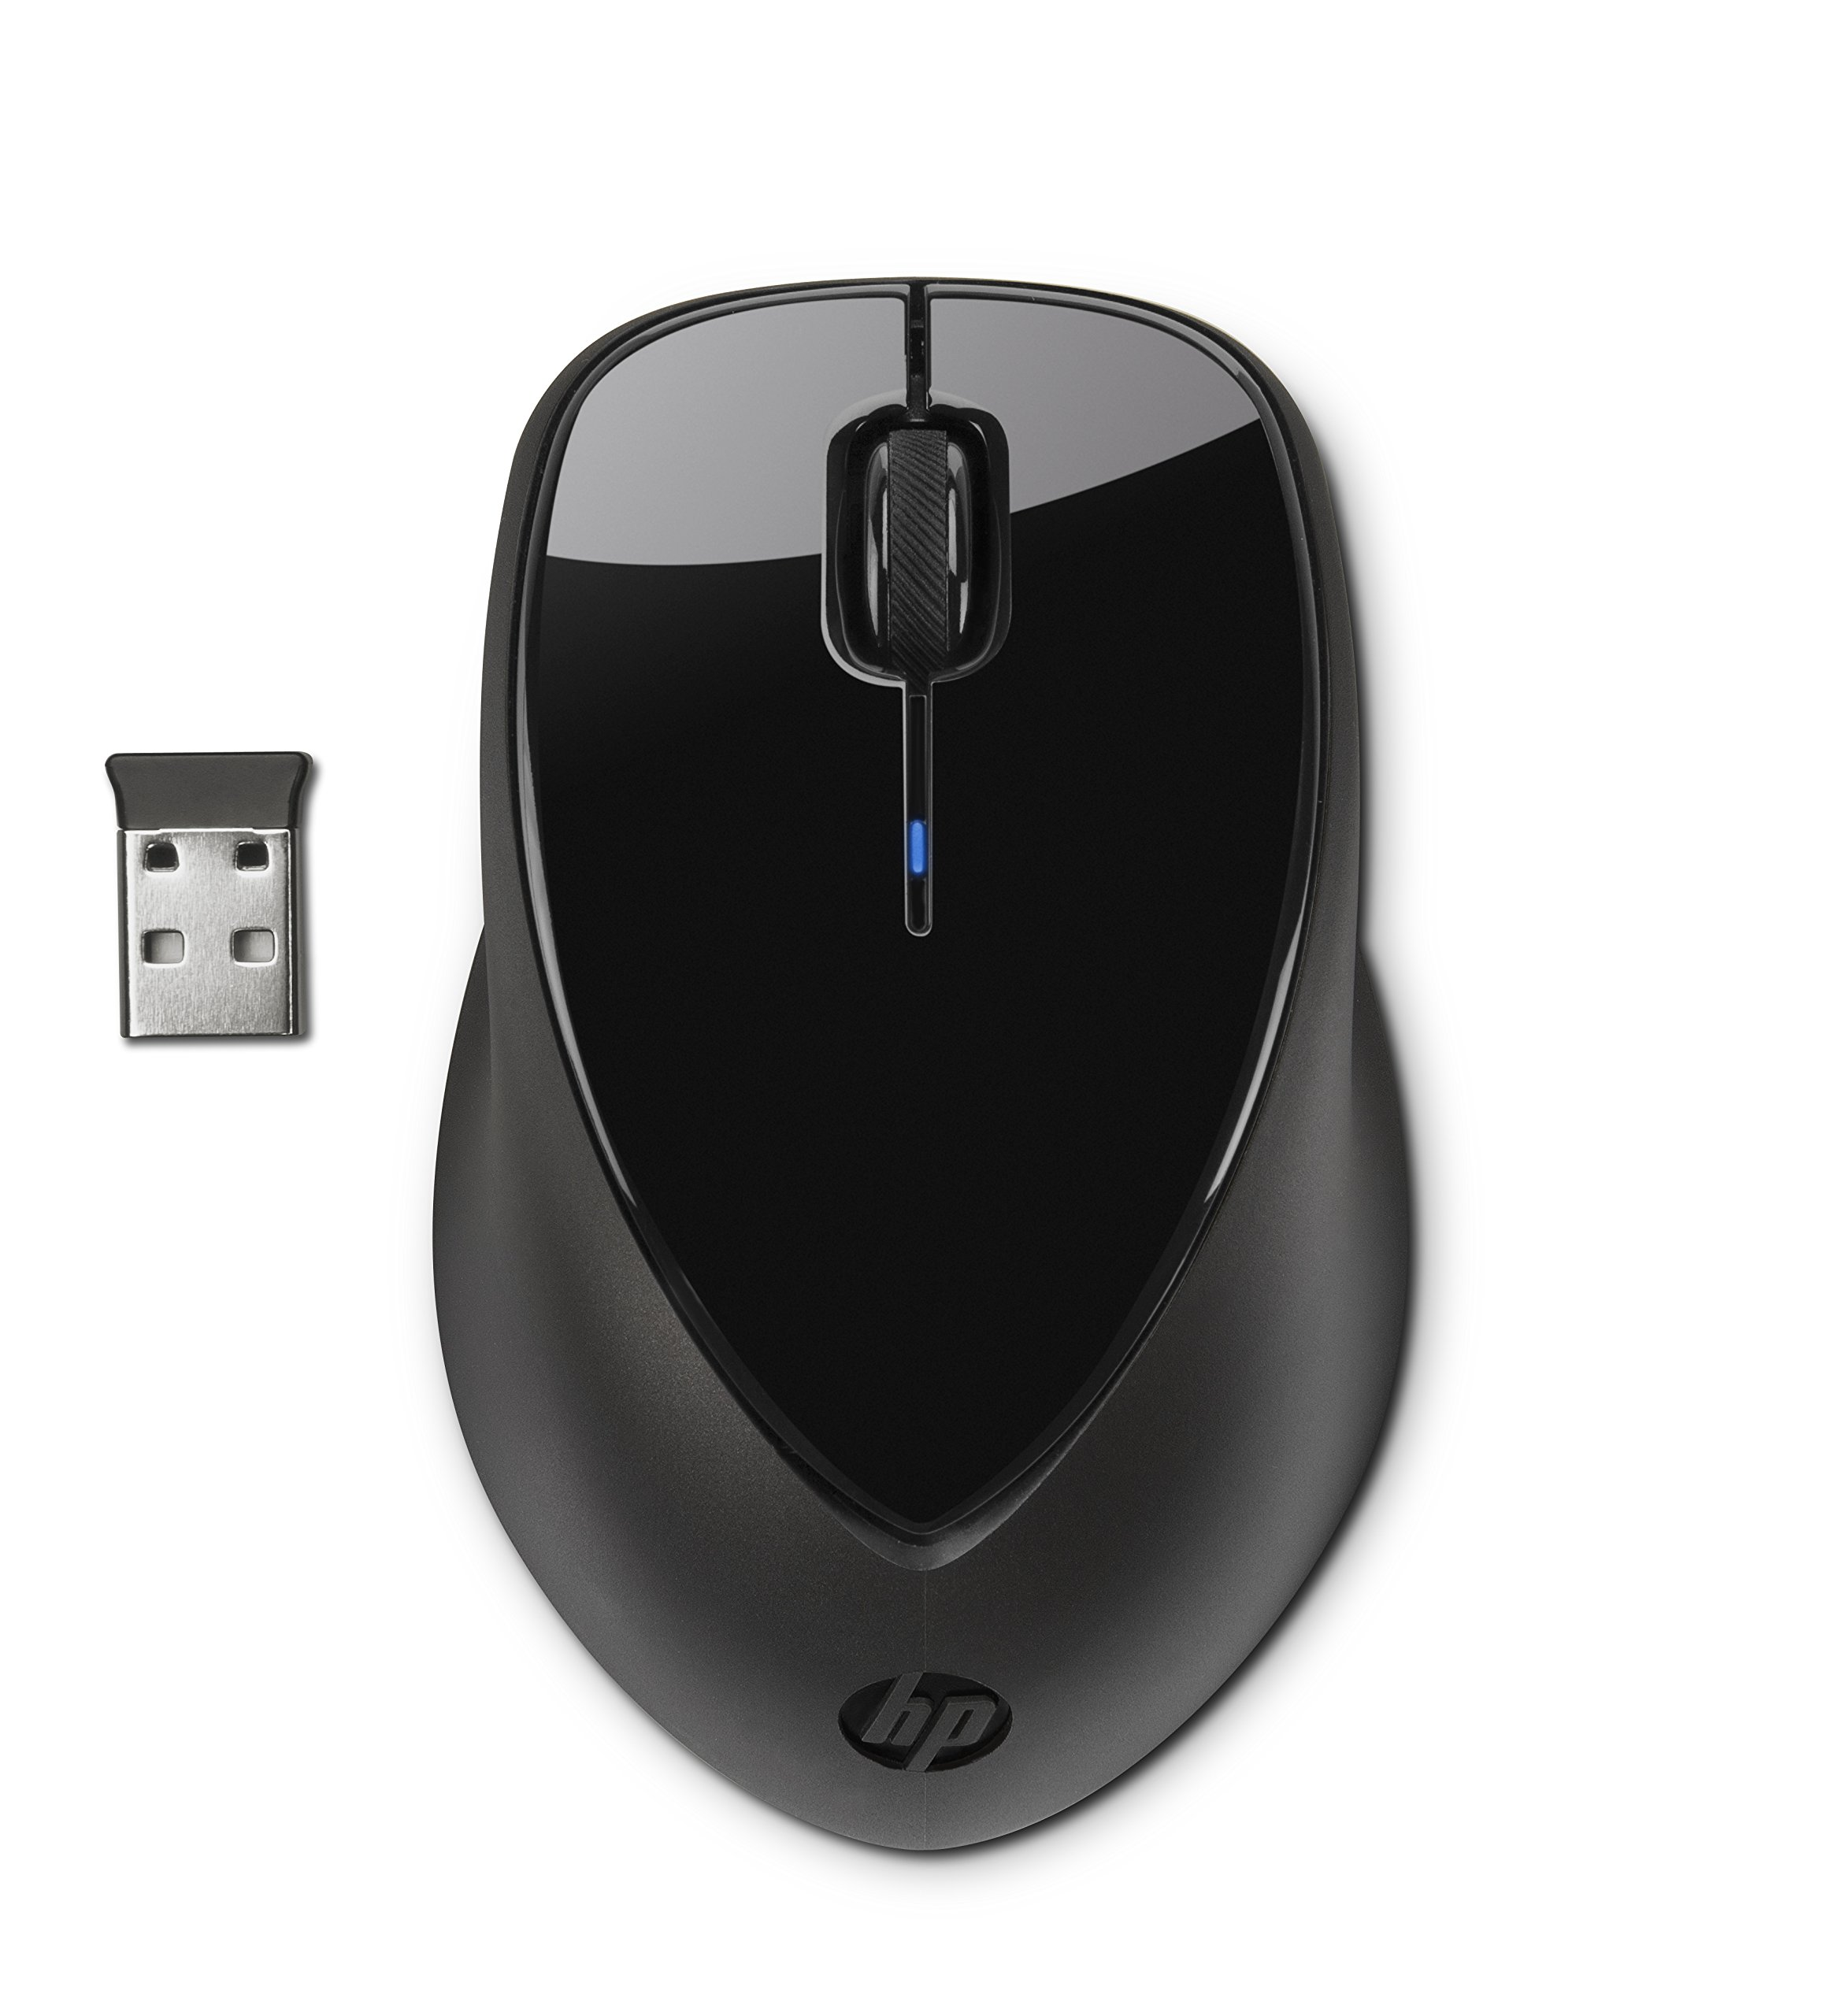 HP A0X35AA#ABA Wireless Mouse X4000 with Laser Sensor by HP